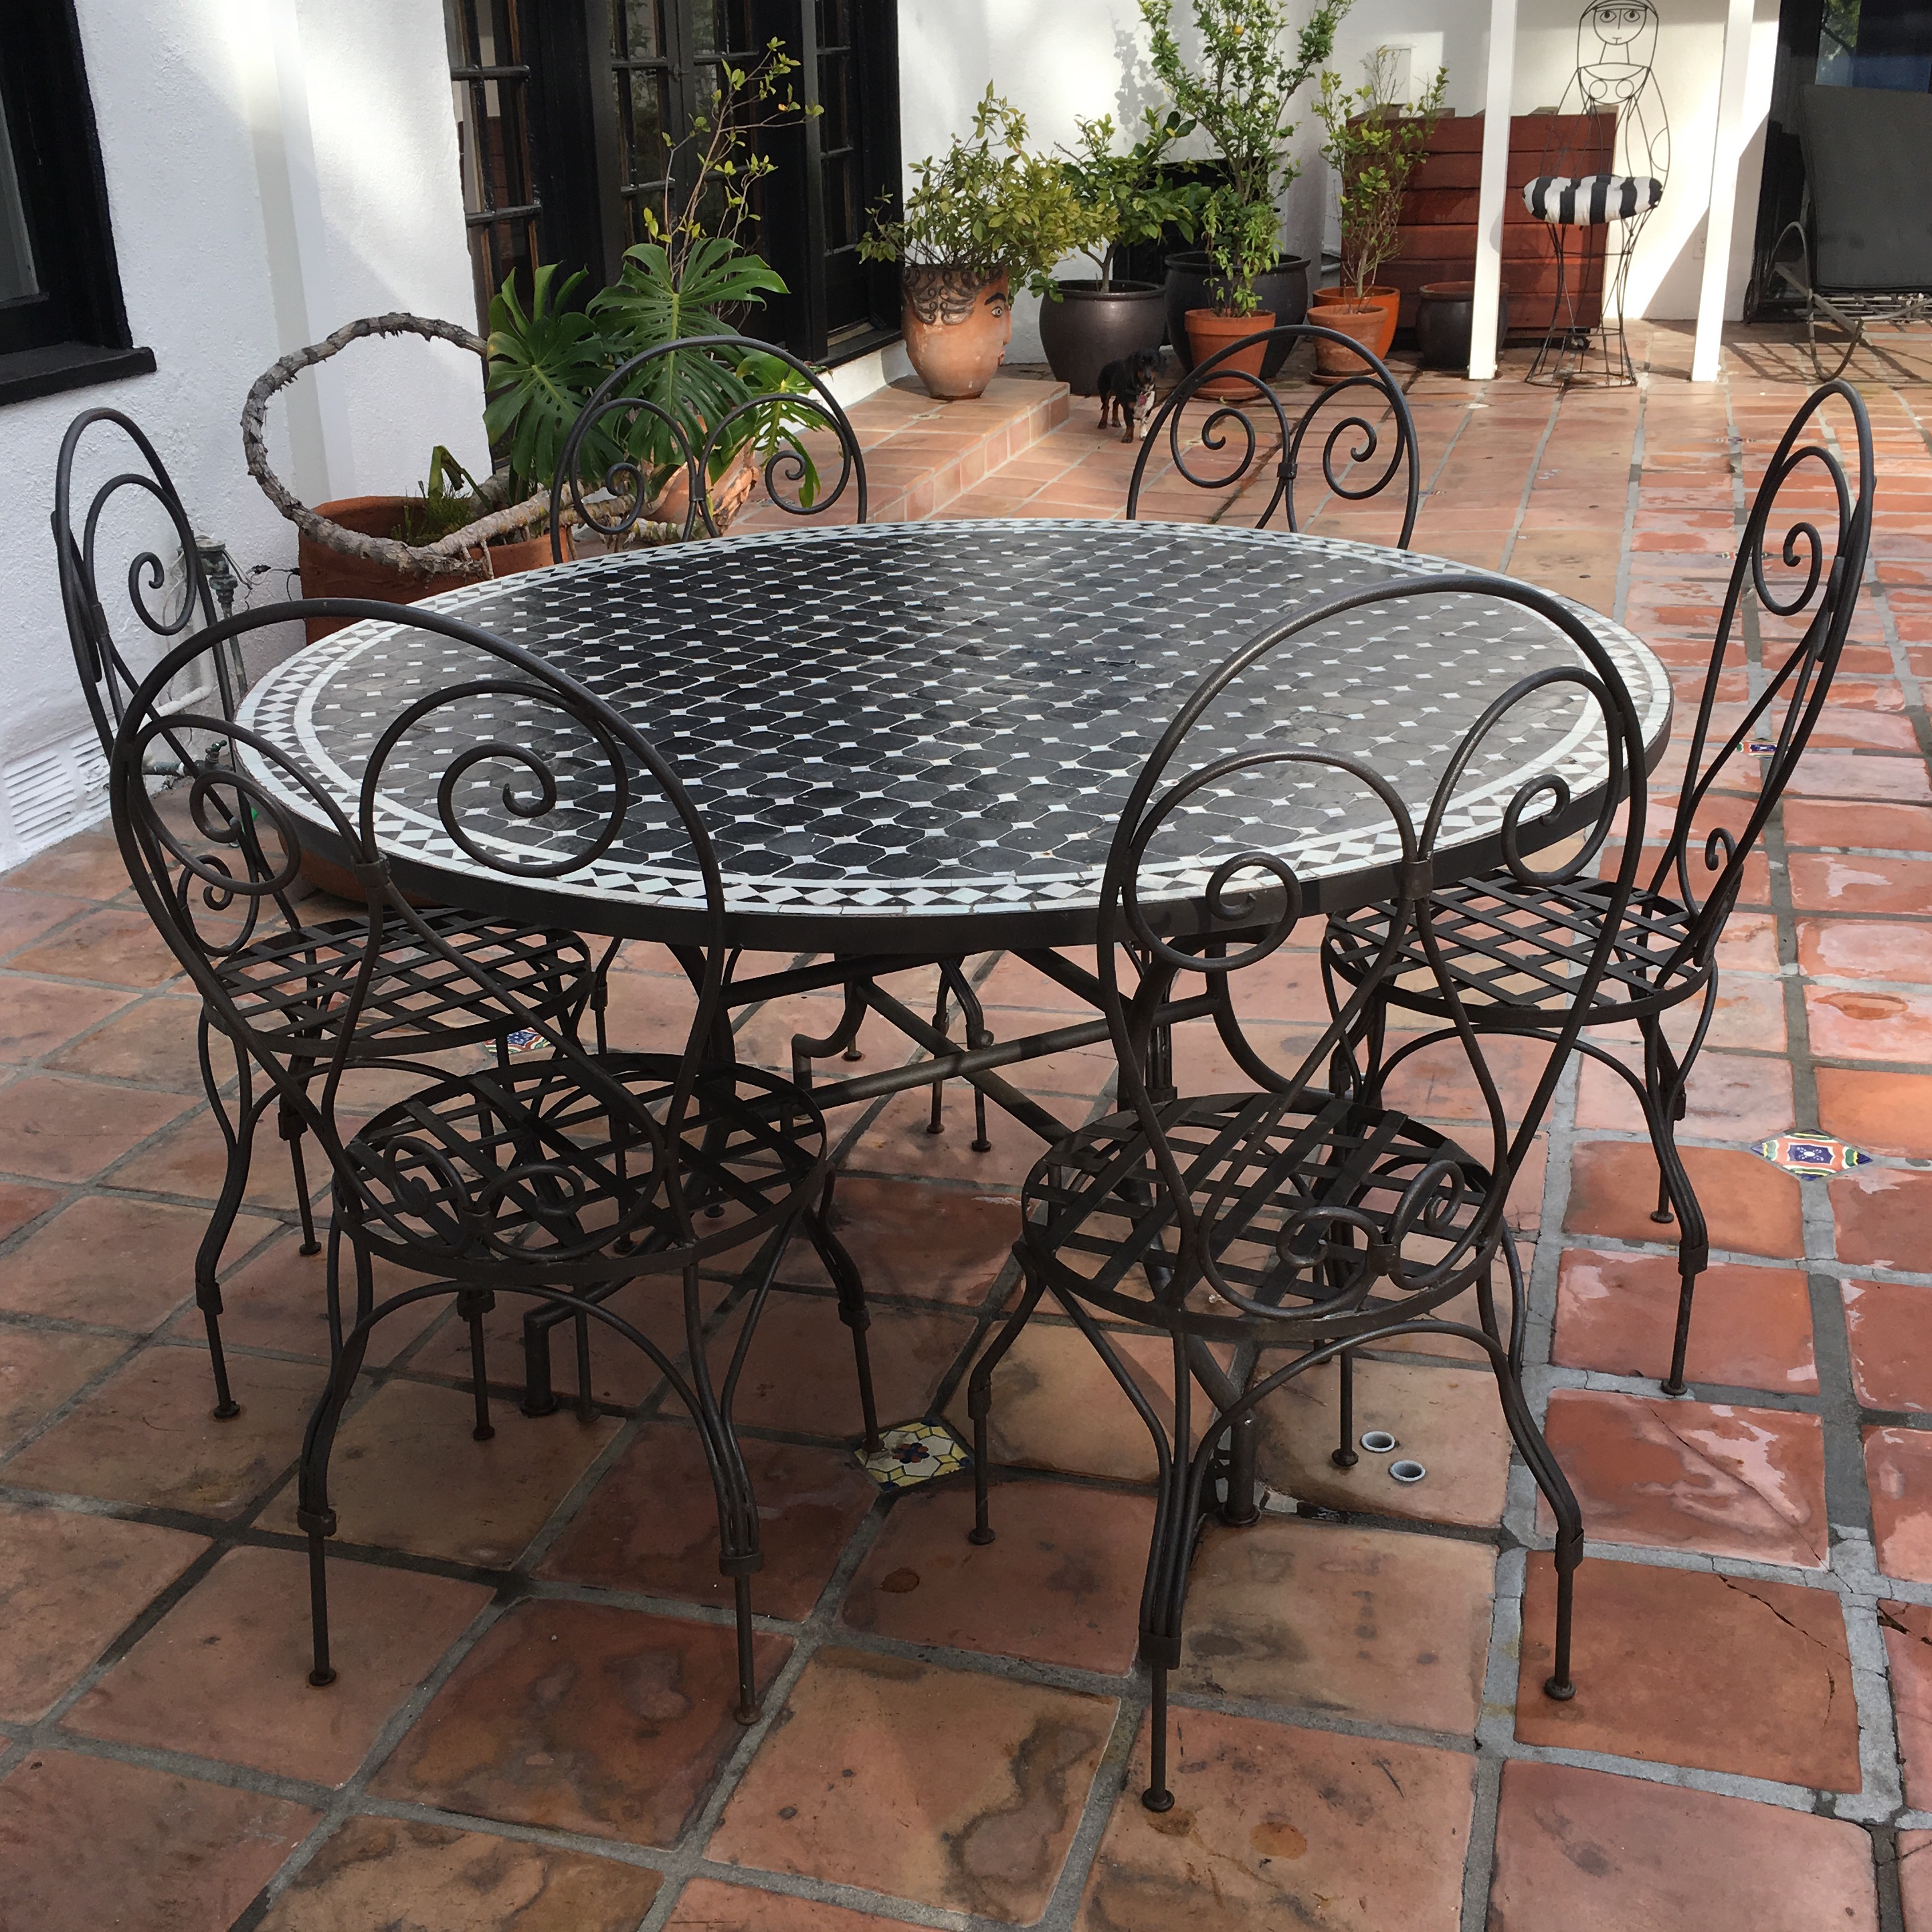 moroccan outdoor furniture. outdoor moroccan mosaic dining table image 7 of furniture